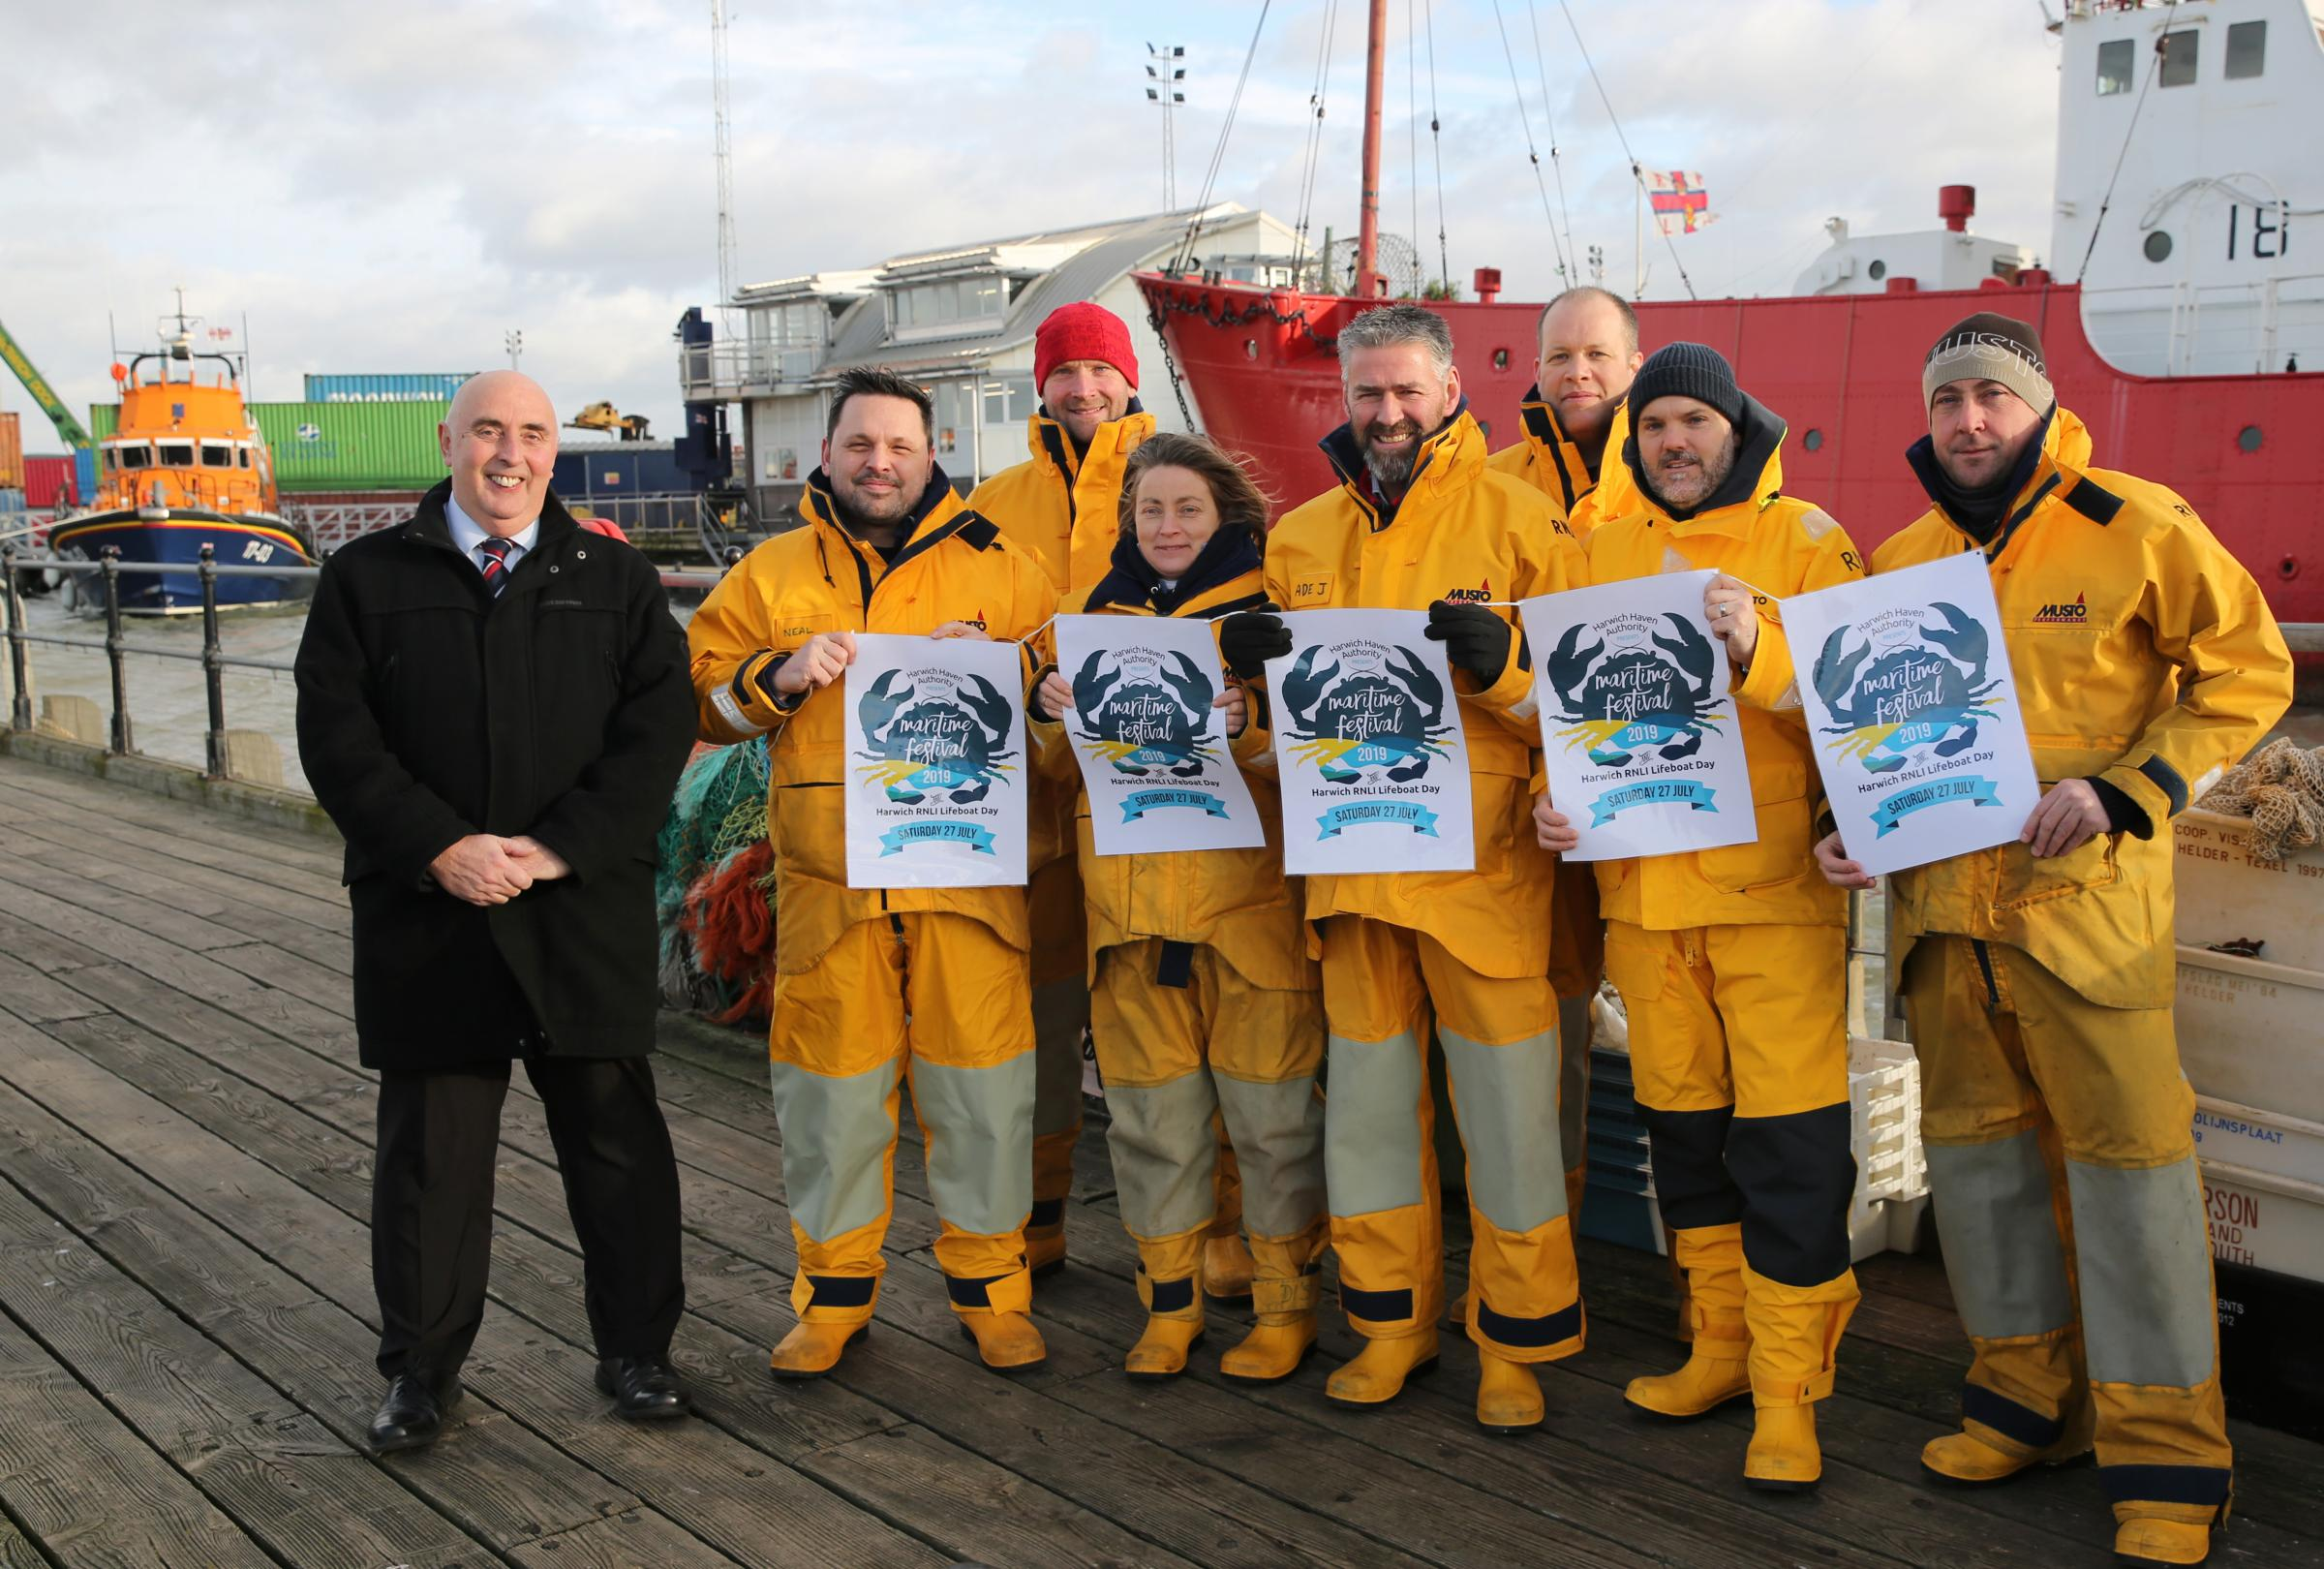 Image to accompany the press release is attached. Caption should read: Neil Glendinning, CEO, Harwich Haven Authority (left) with members of the Harwich RNLI Lifeboat station